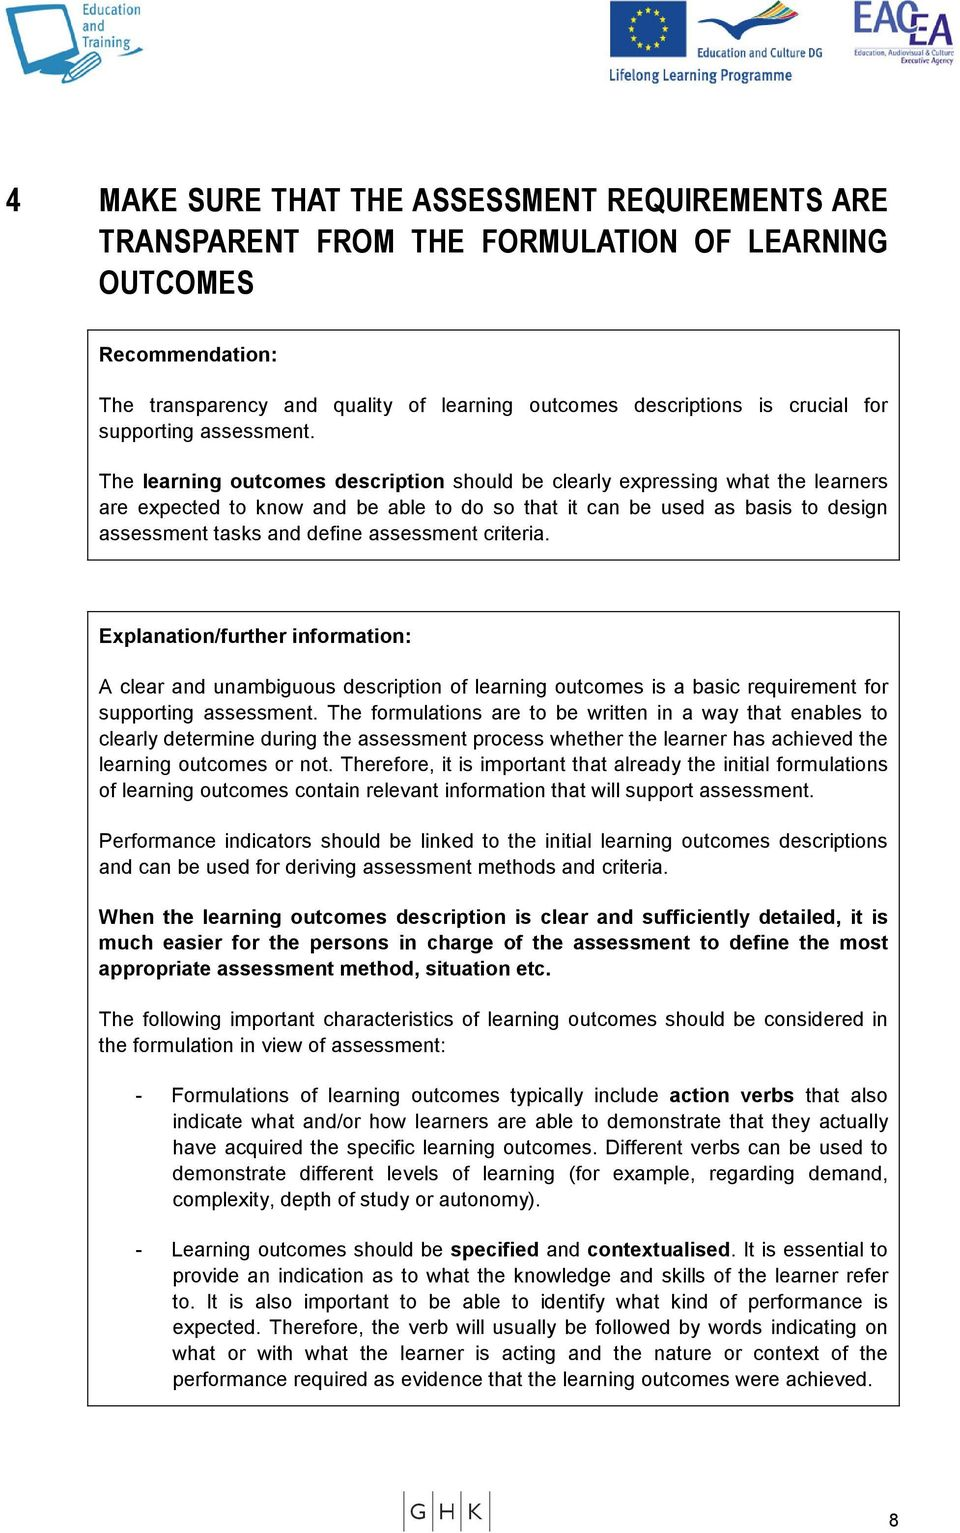 The learning outcomes description should be clearly expressing what the learners are expected to know and be able to do so that it can be used as basis to design assessment tasks and define